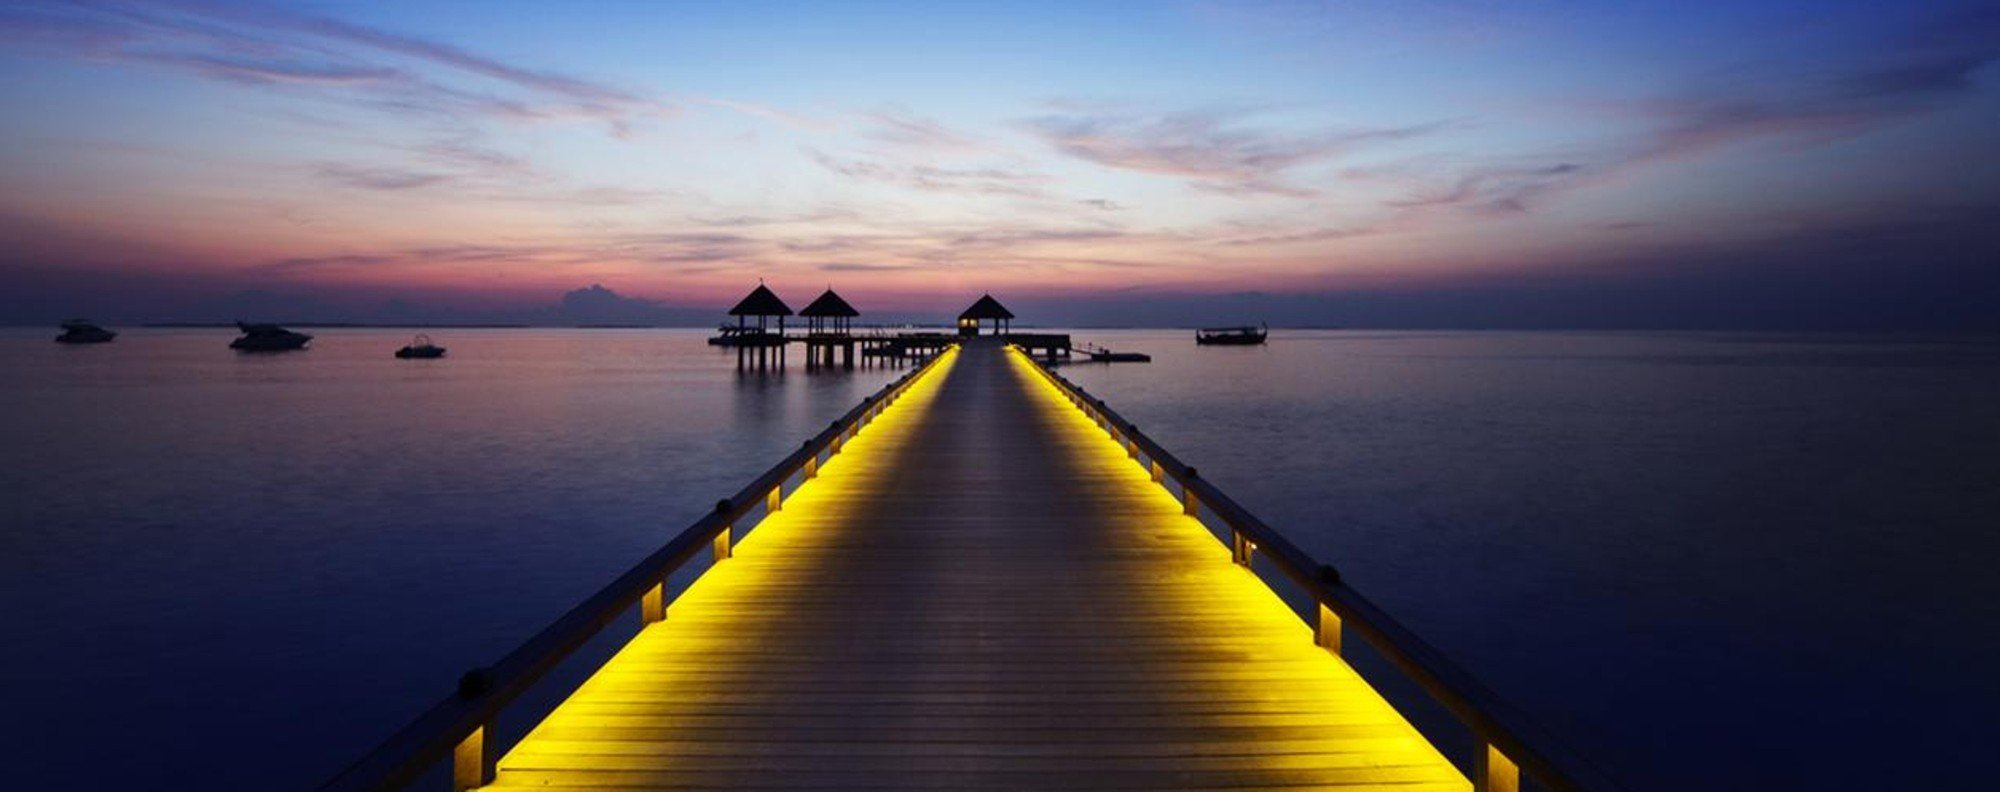 The JA Manafaru resort, in the Maldives.